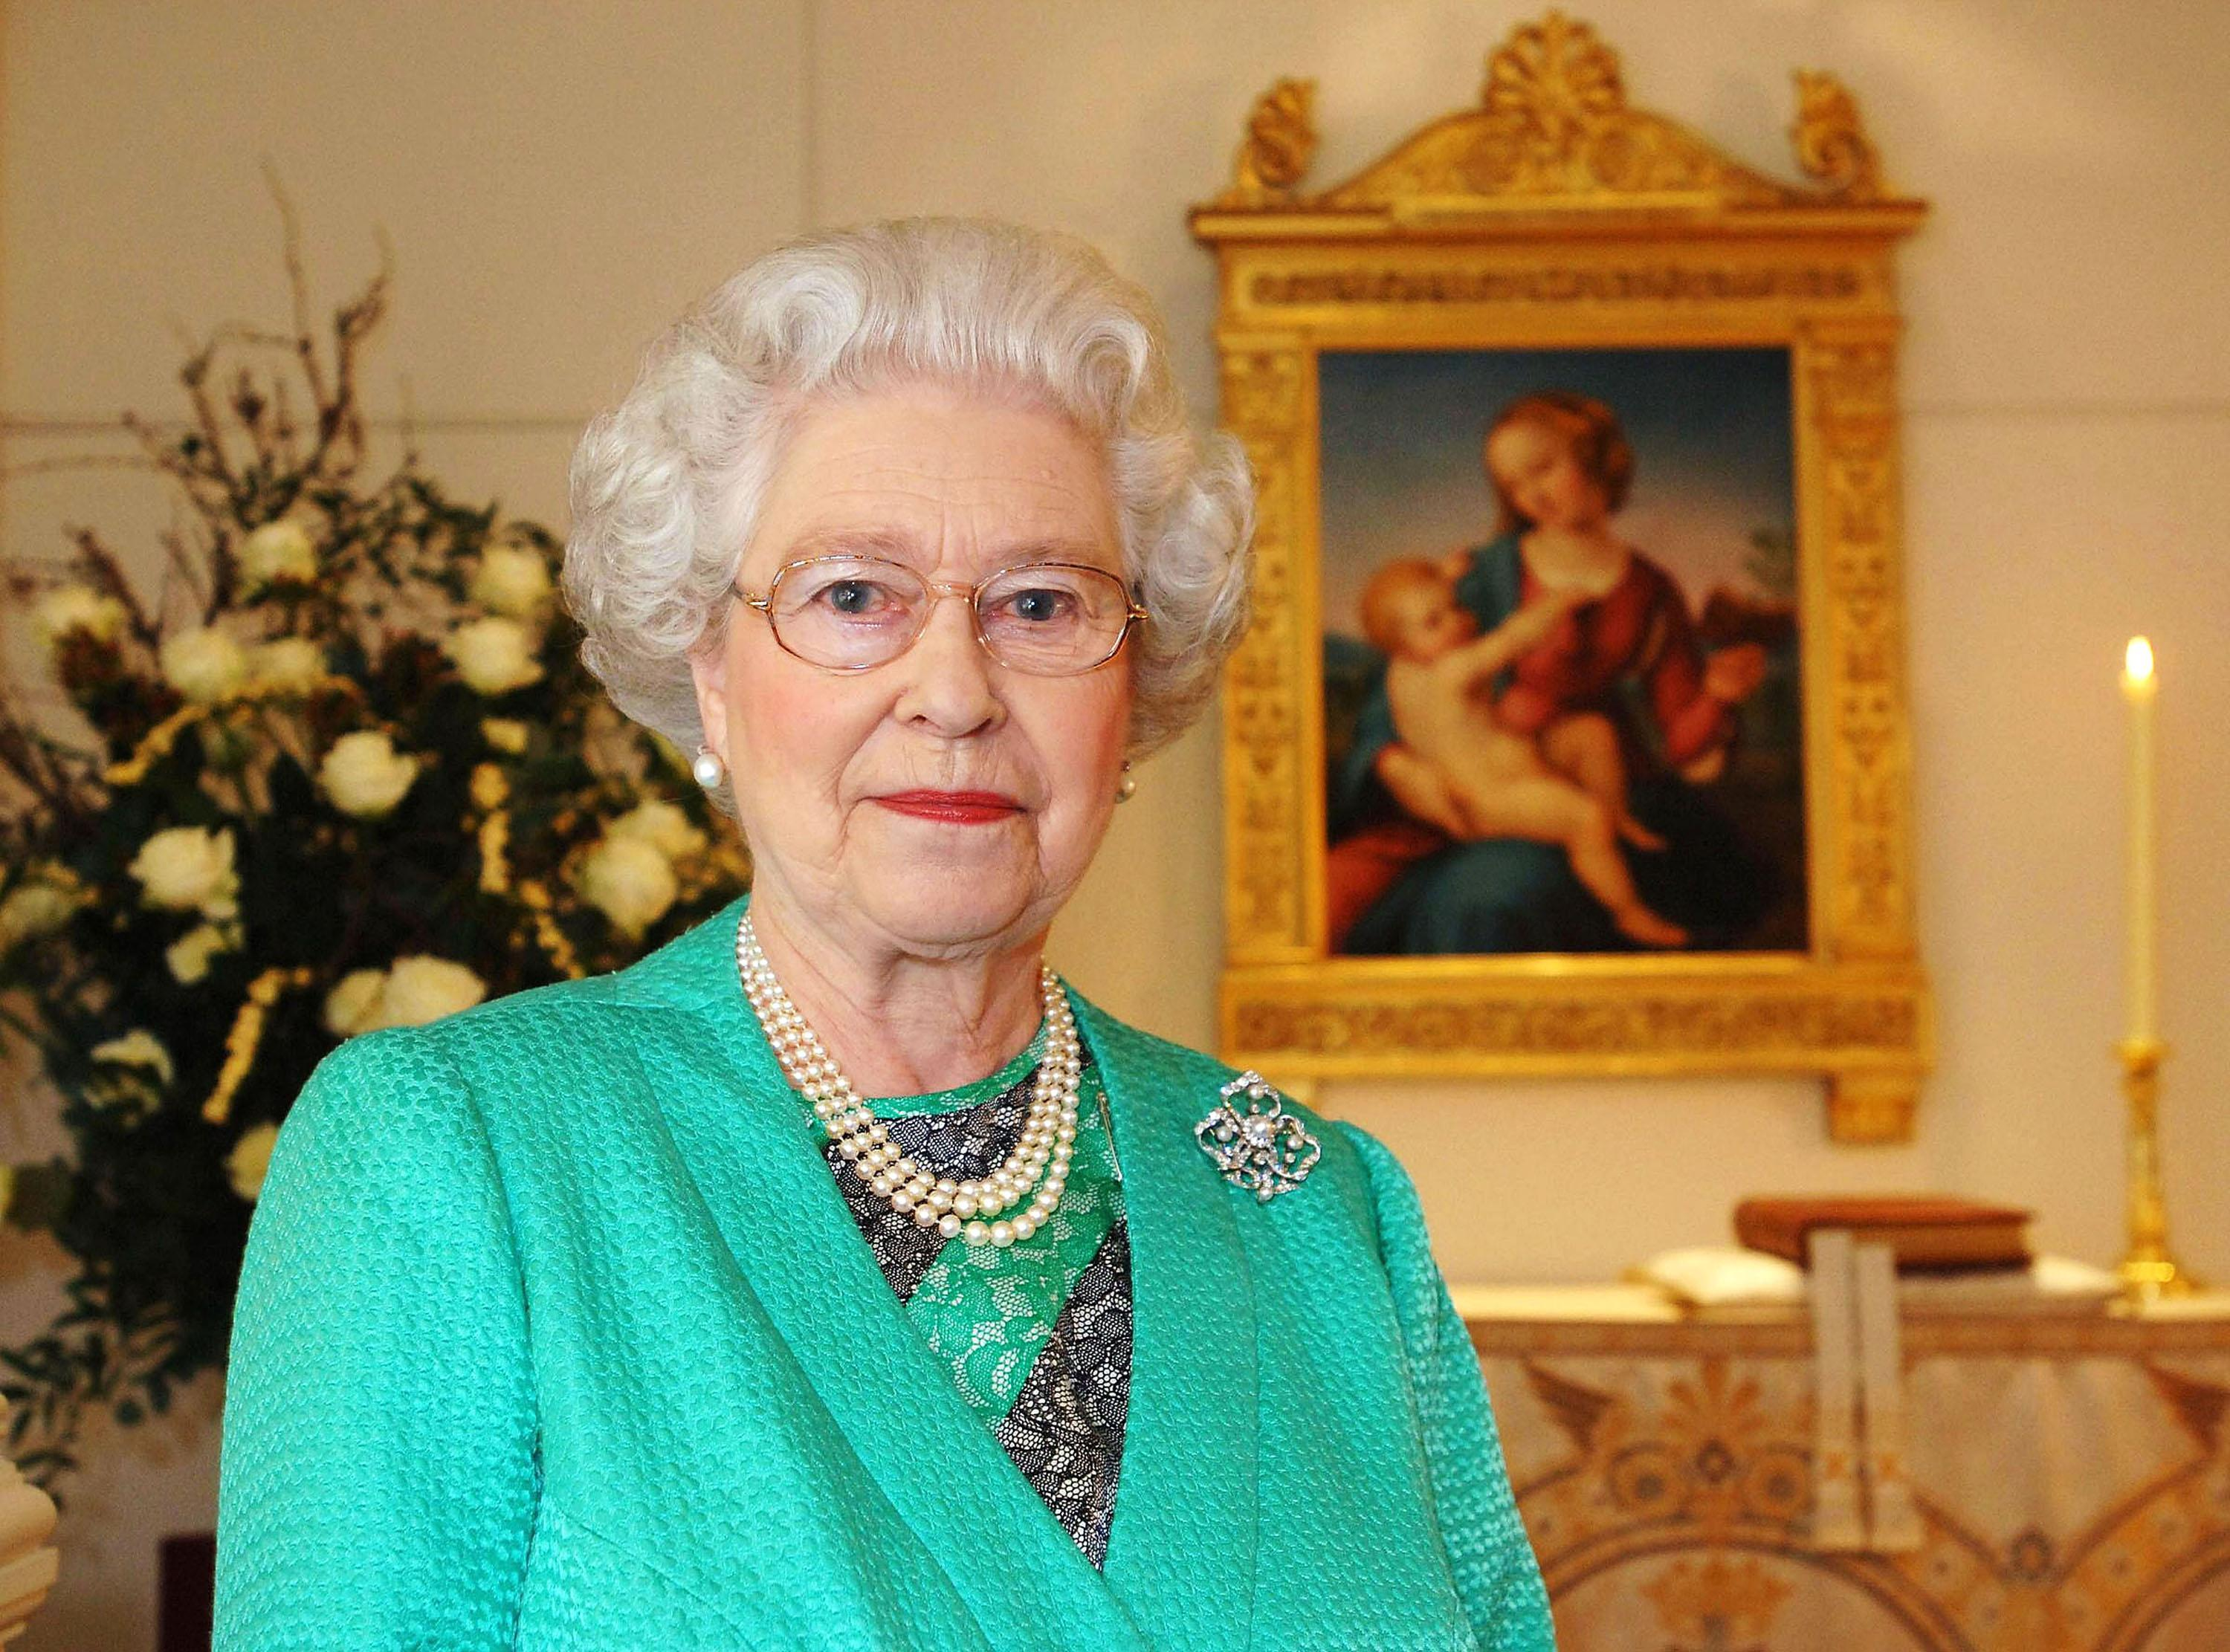 What time is the Queen's Speech on Christmas Day and what is Her Royal Highness' theme this year?